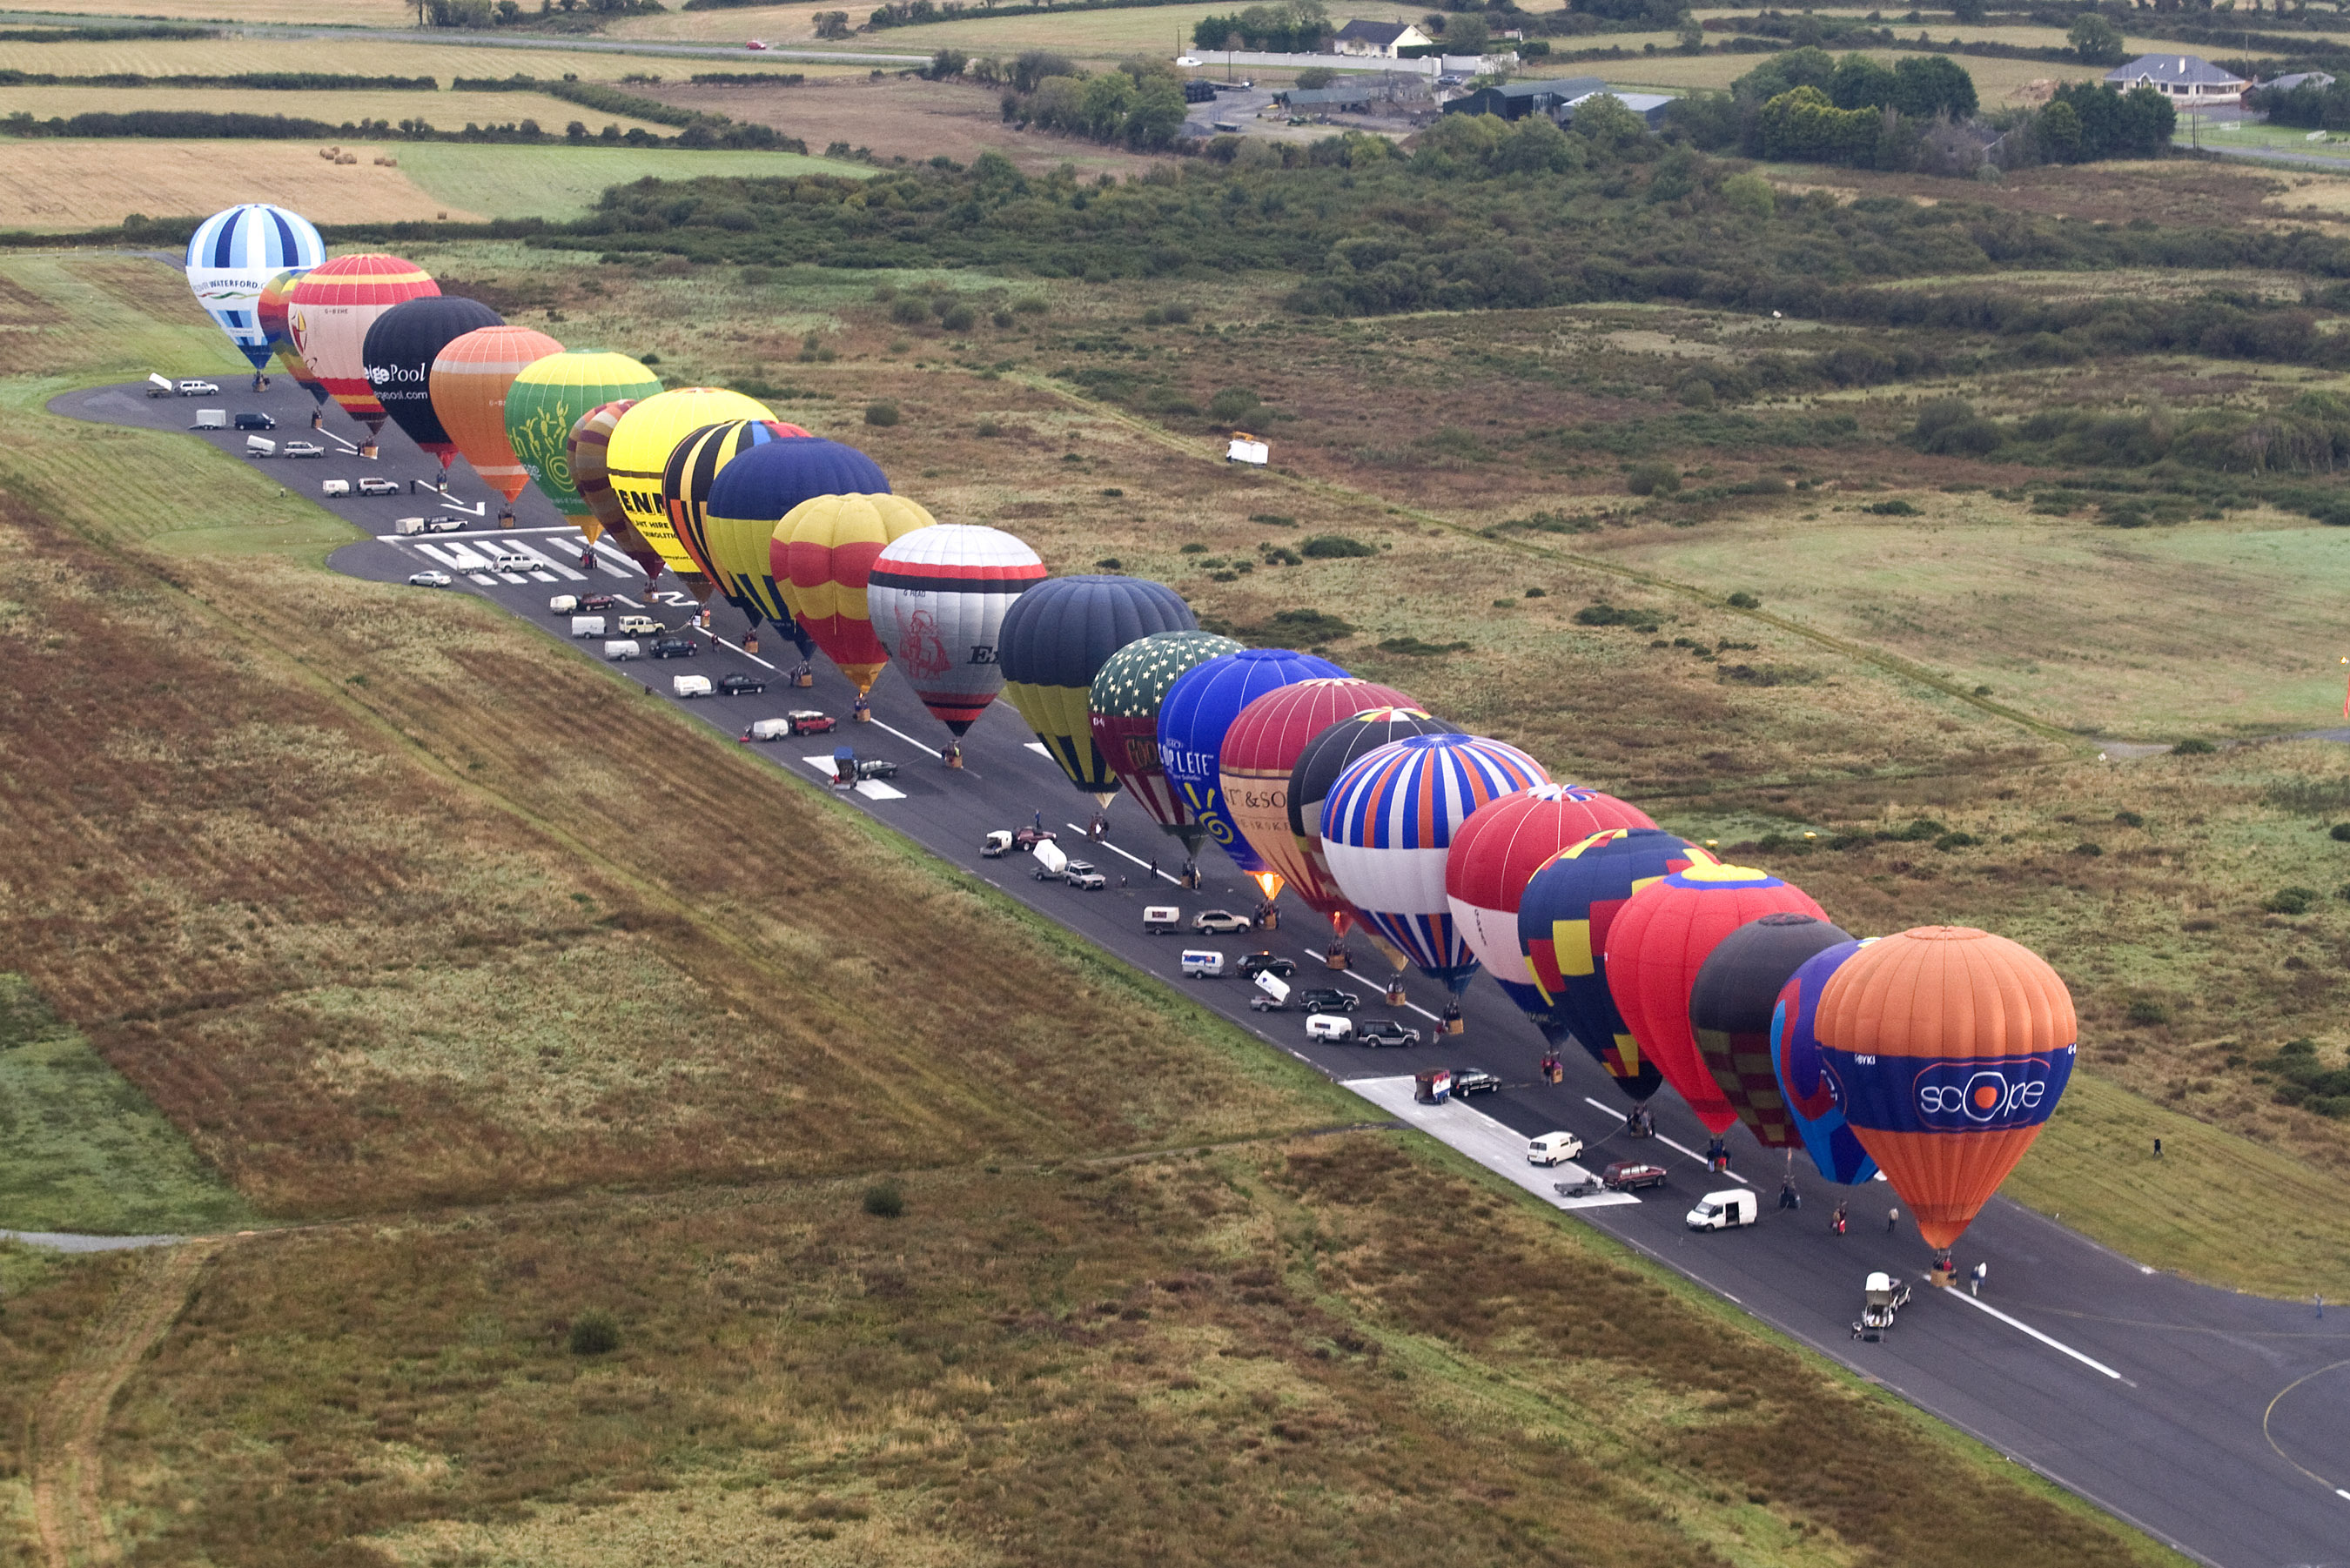 Pictured is record In-Line launch of Largest number of hot air balloons in a single line at Waterford Airport in 2009